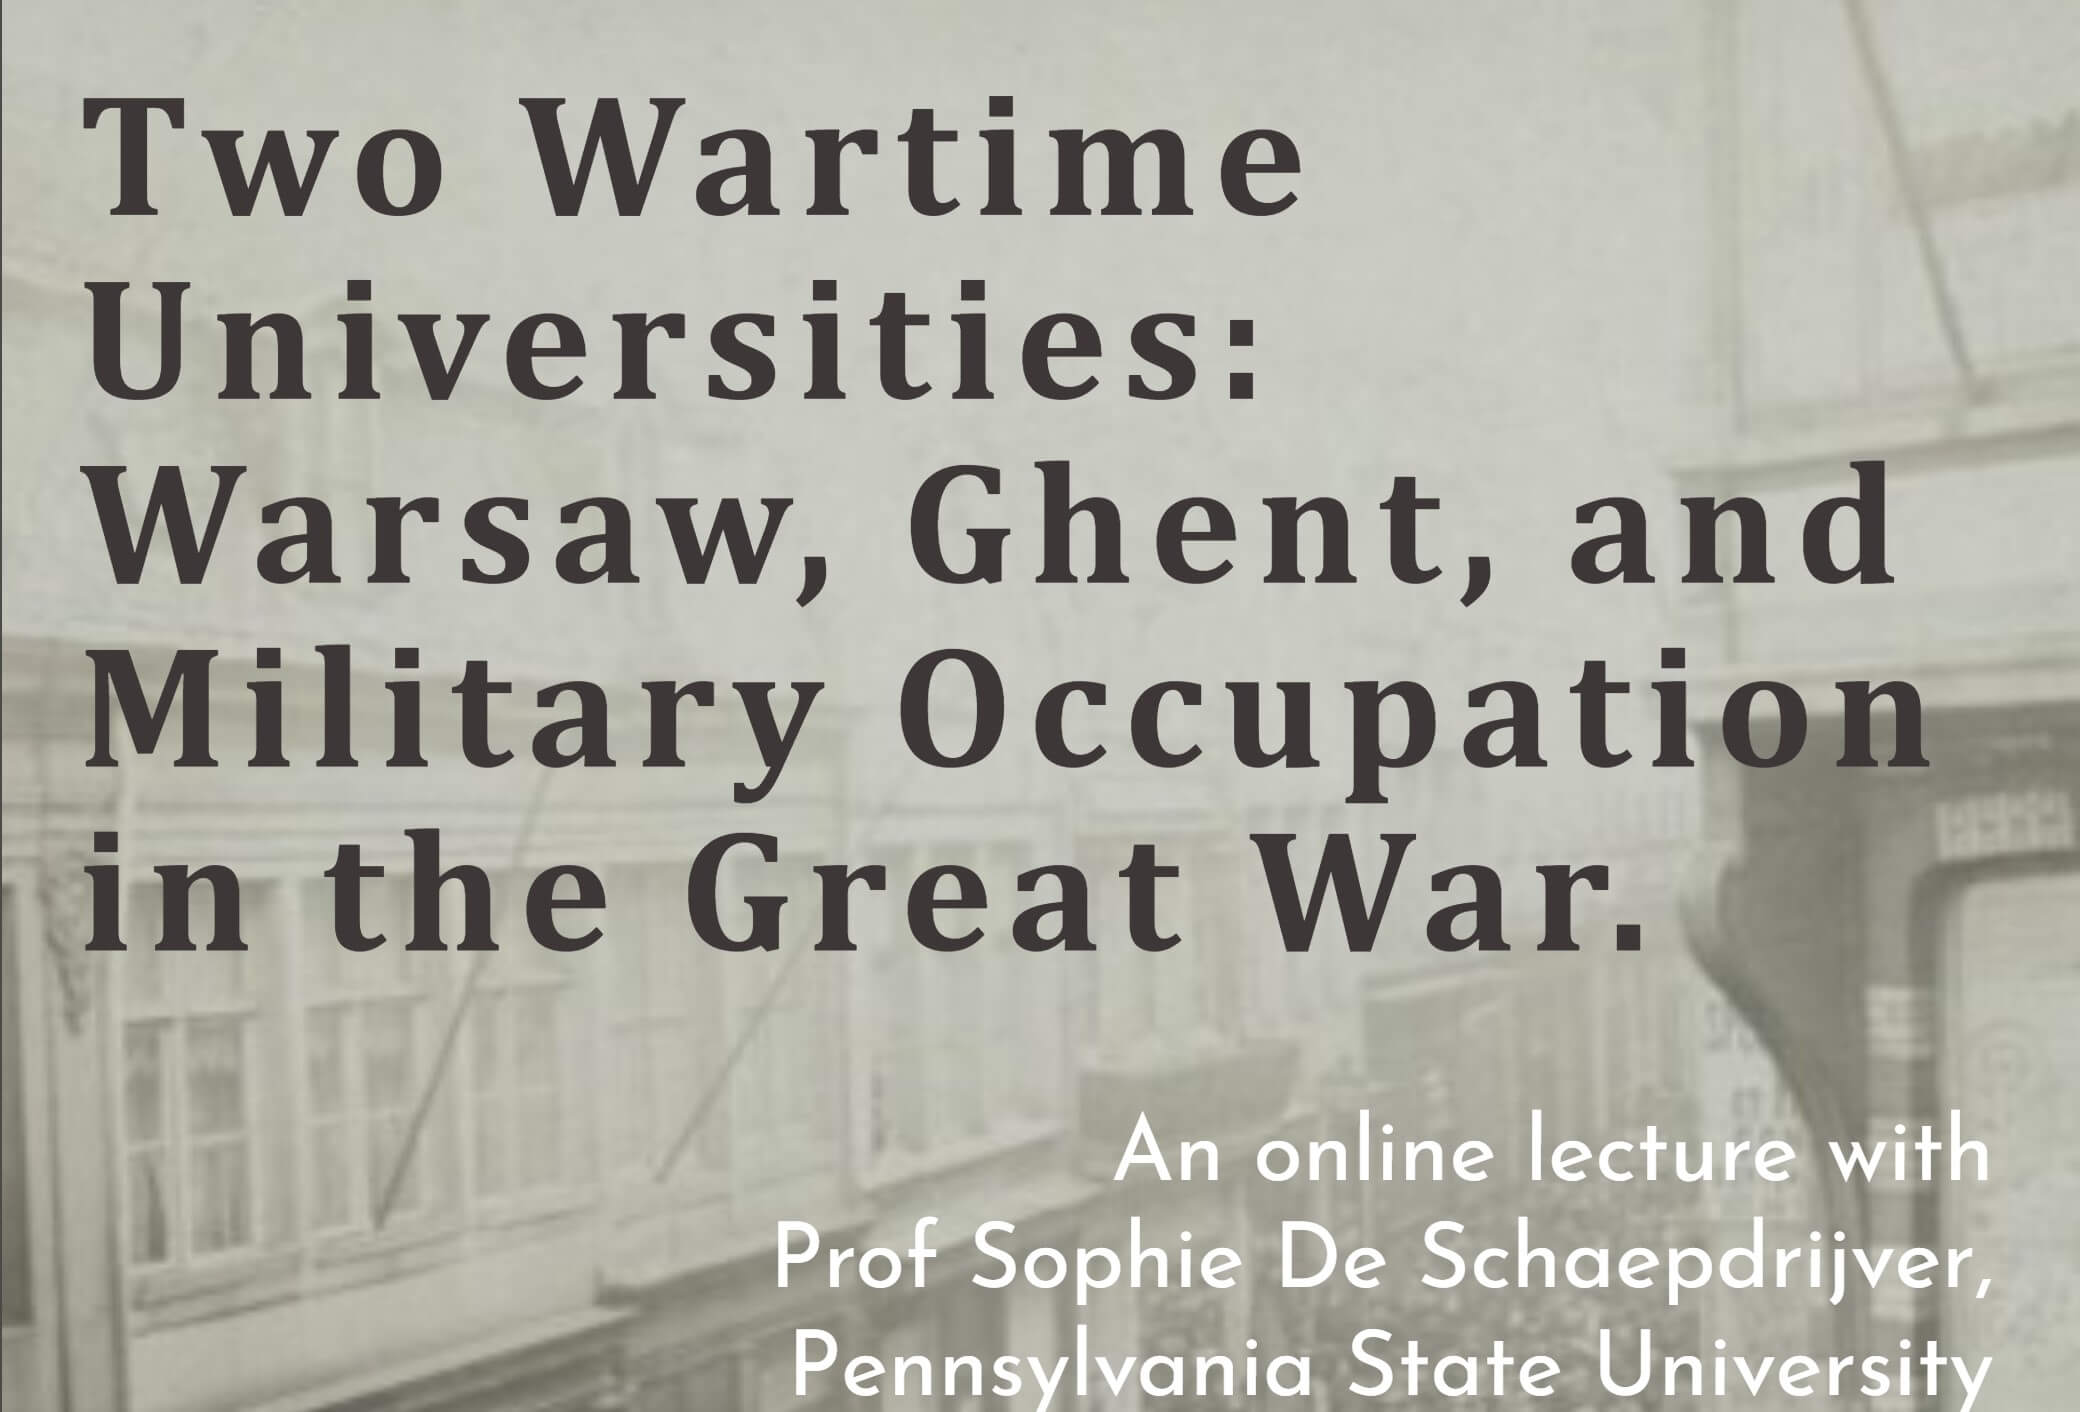 Two Wartime Universities: Warsaw, Ghent, and Military Occupation in the Great War